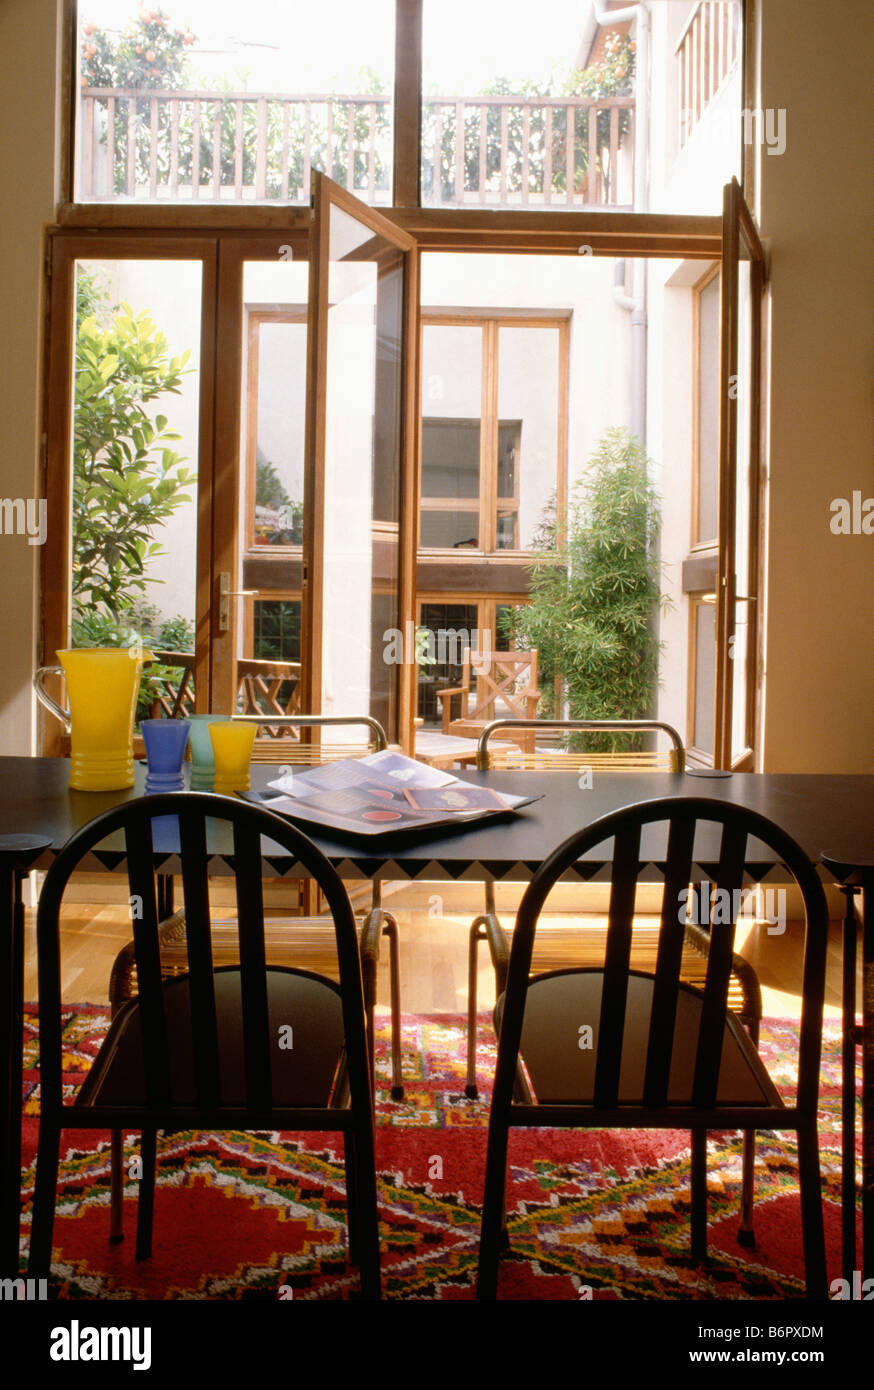 Modern Dining Room With Black Table And Chairs In Front Of French Doors On  To Small Courtyard Garden